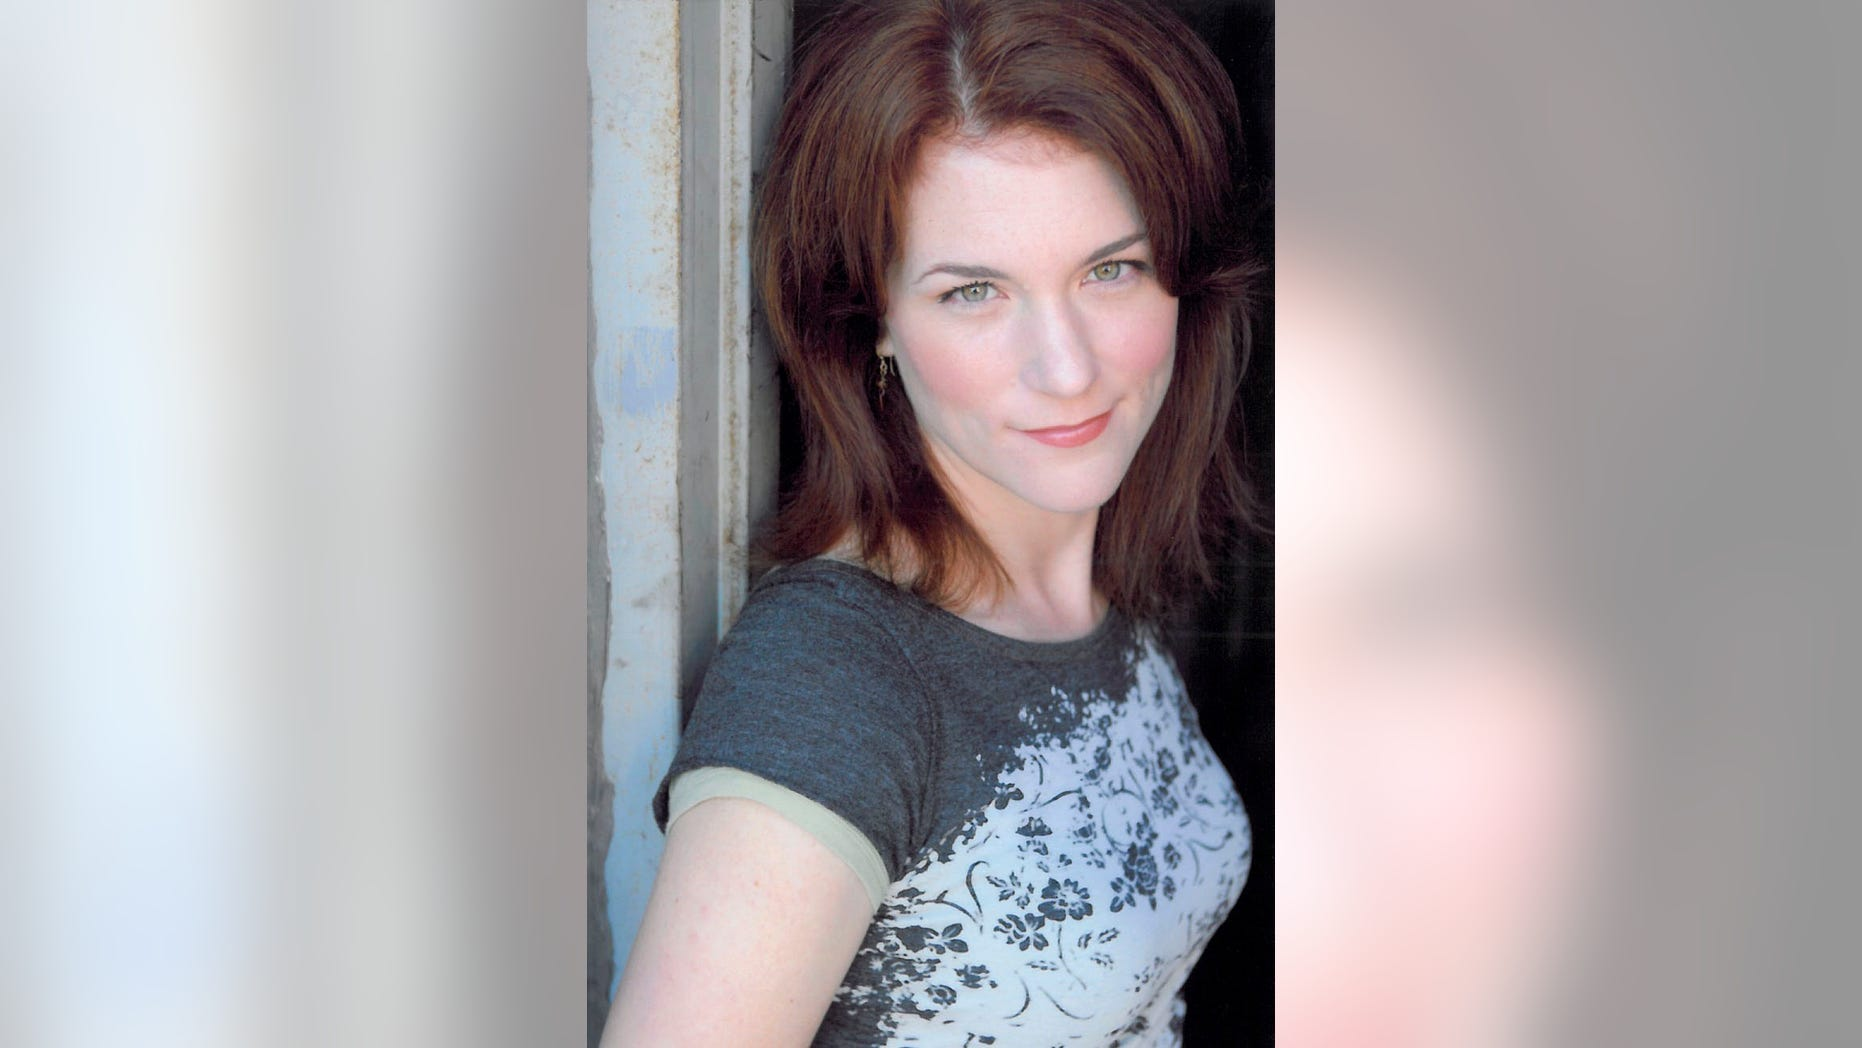 """This photo provided by Cathy Taylor Public Relations, Inc., shows Molly Glynn. Glynn, an accomplished Chicago theater actress who also played a recurring role as a doctor on the TV series """"Chicago Fire,"""" has died after a tree toppled by a powerful storm struck her as she rode her bike in a forest park. Glynn's husband called the emergency dispatcher just before 4 p.m. on Friday, Sept. 5, 2014, to say his wife had been injured, Cook County Sheriff's Office spokeswoman Sophia Ansari said. She was 46. (AP Photo/Cathy Taylor Public Relations, Inc.)"""